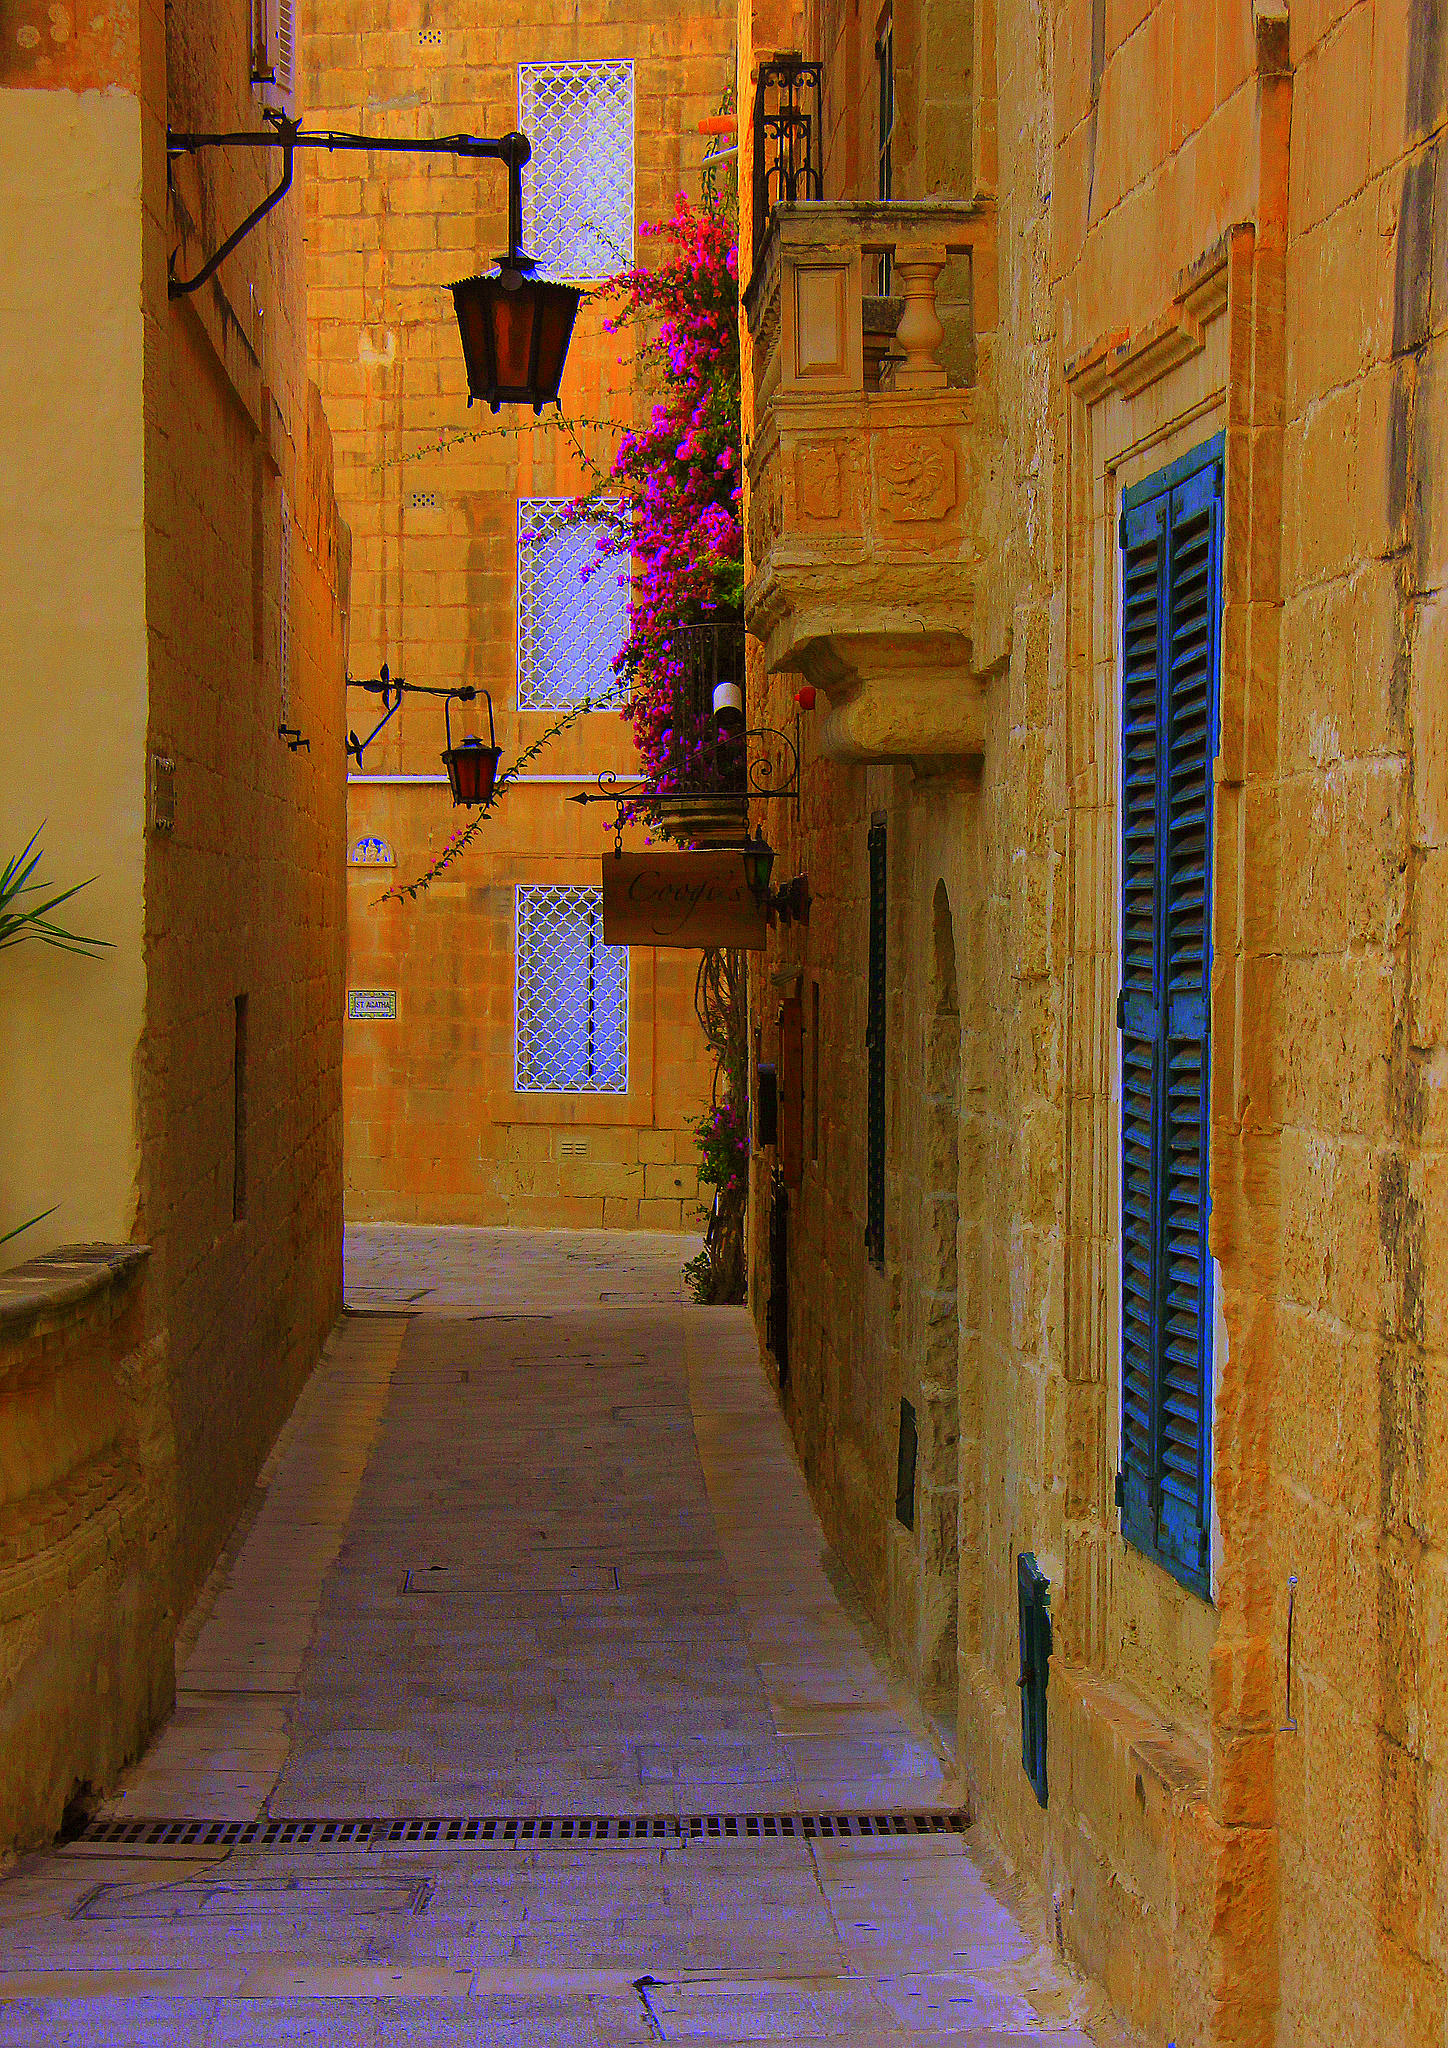 Mdina is called the Silent City of Malta